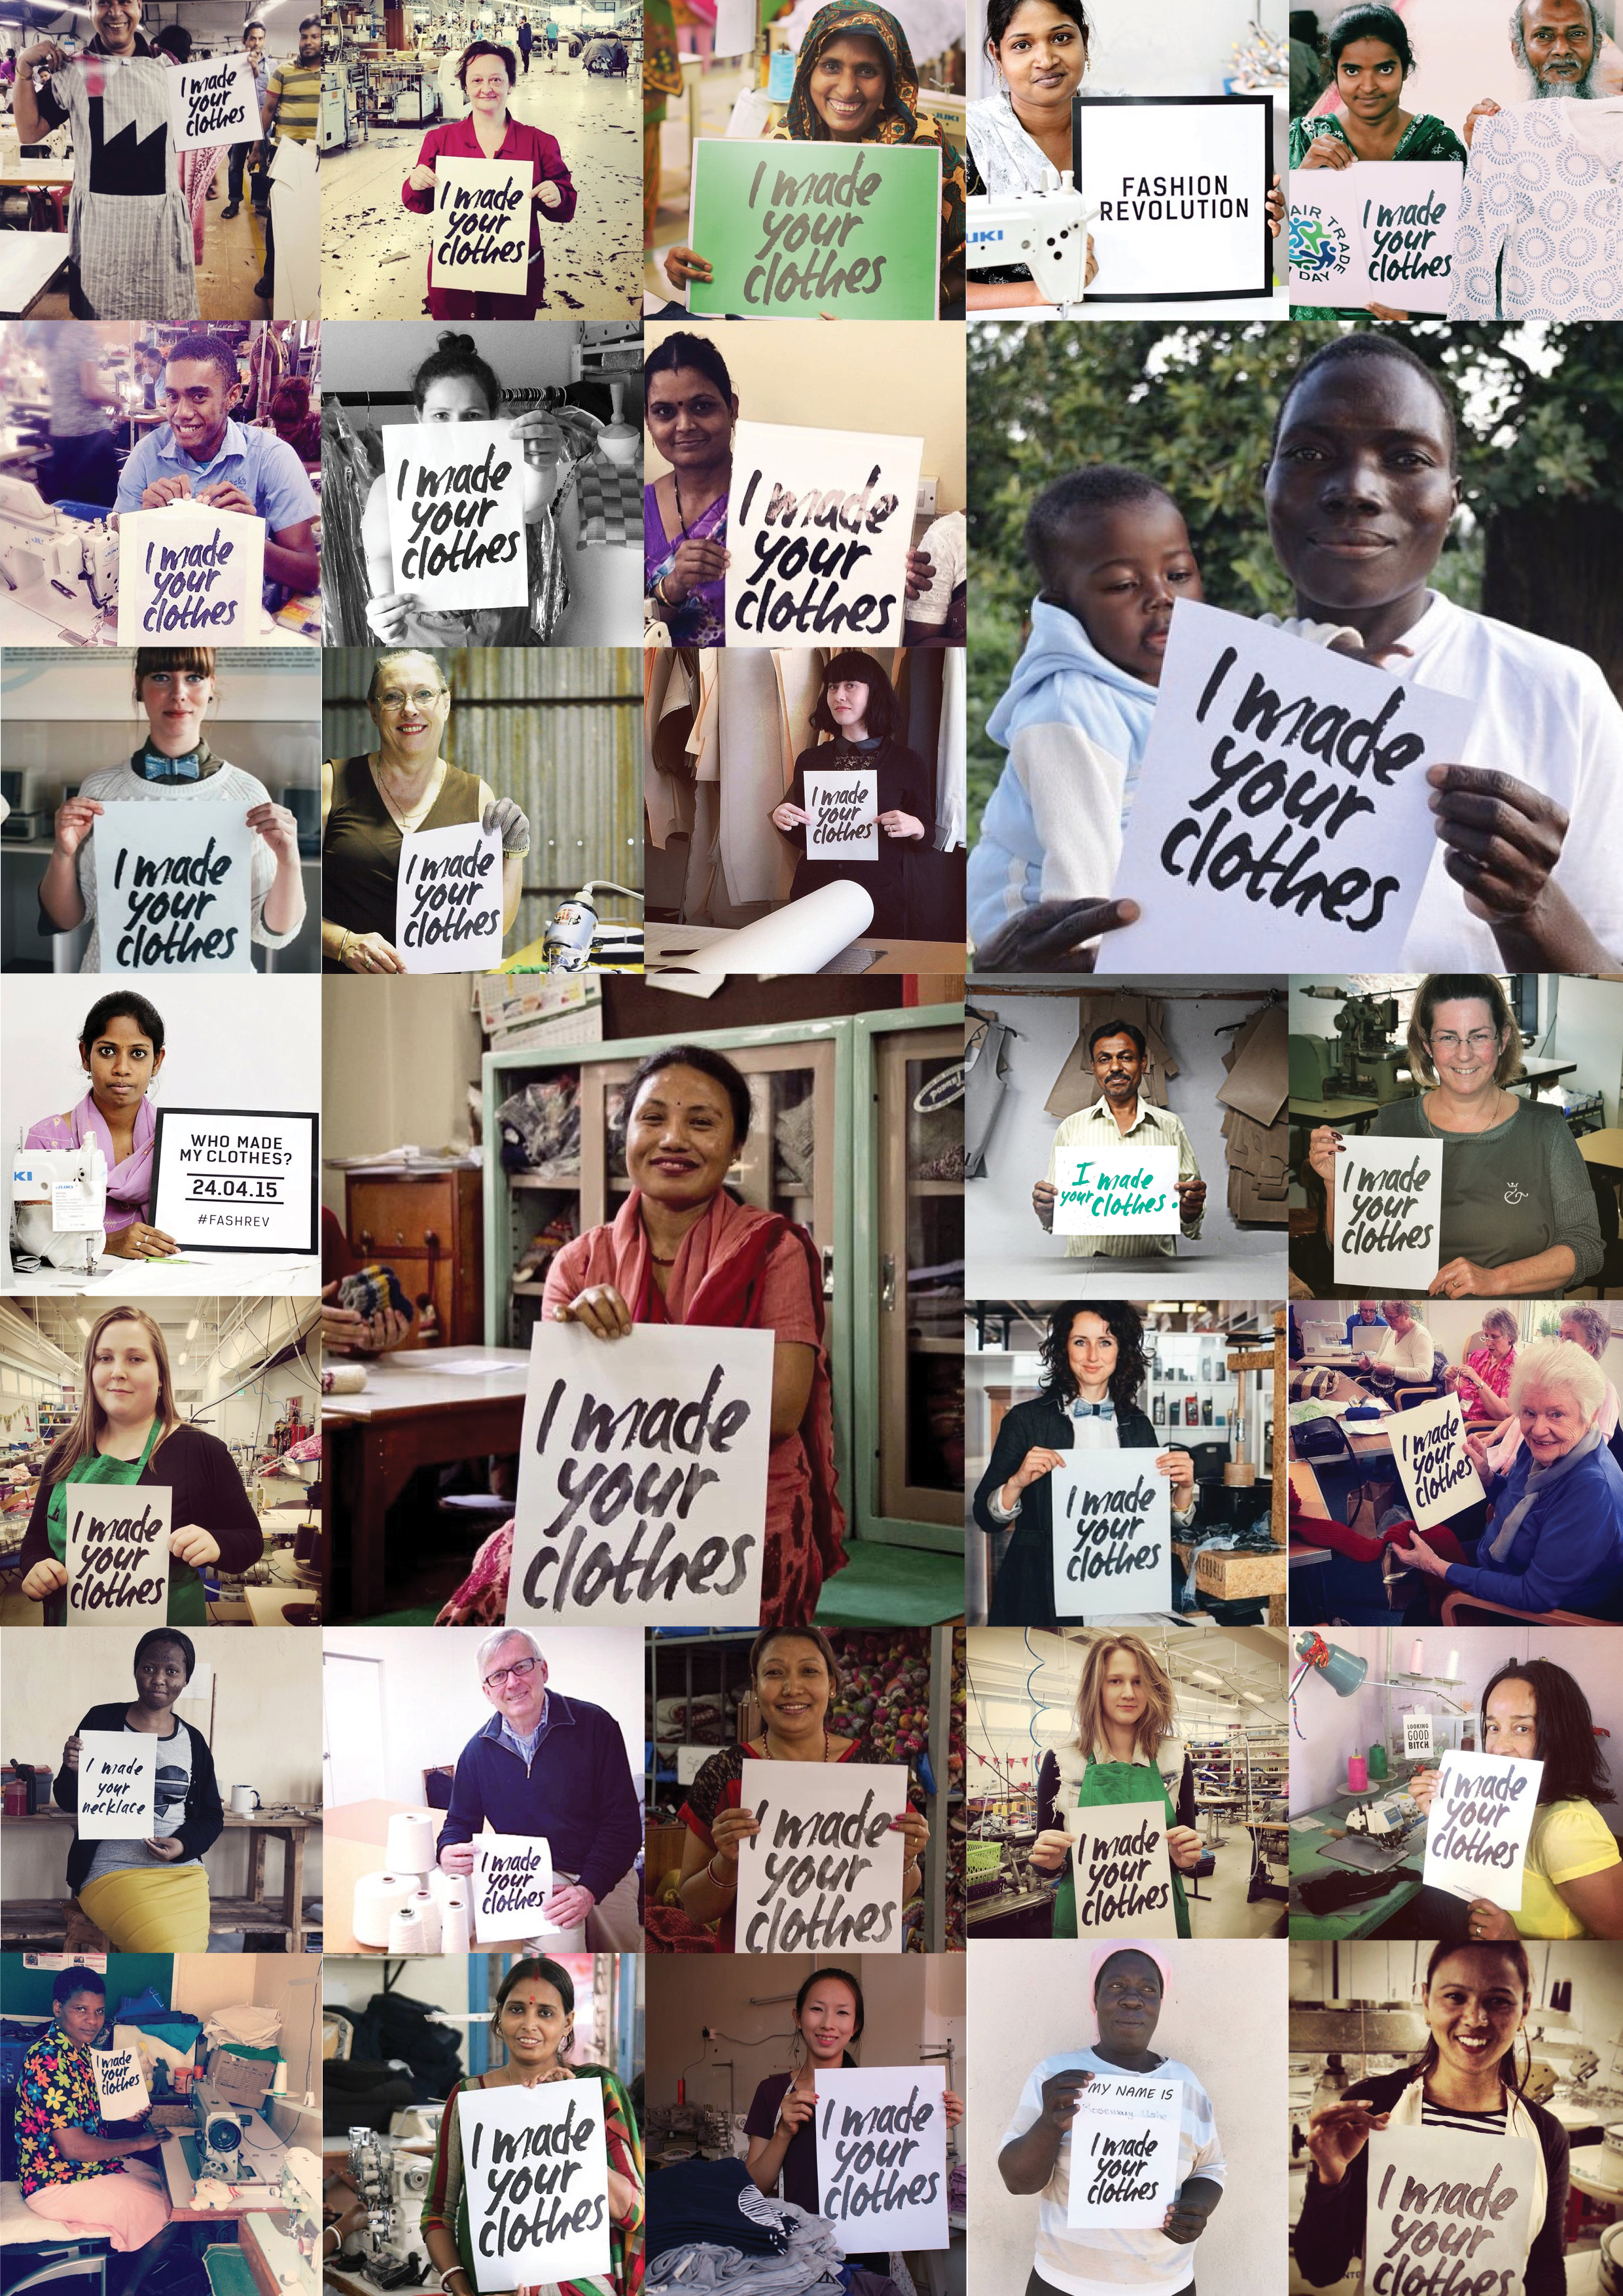 Fashion Revolution campaign #whomademyclothes